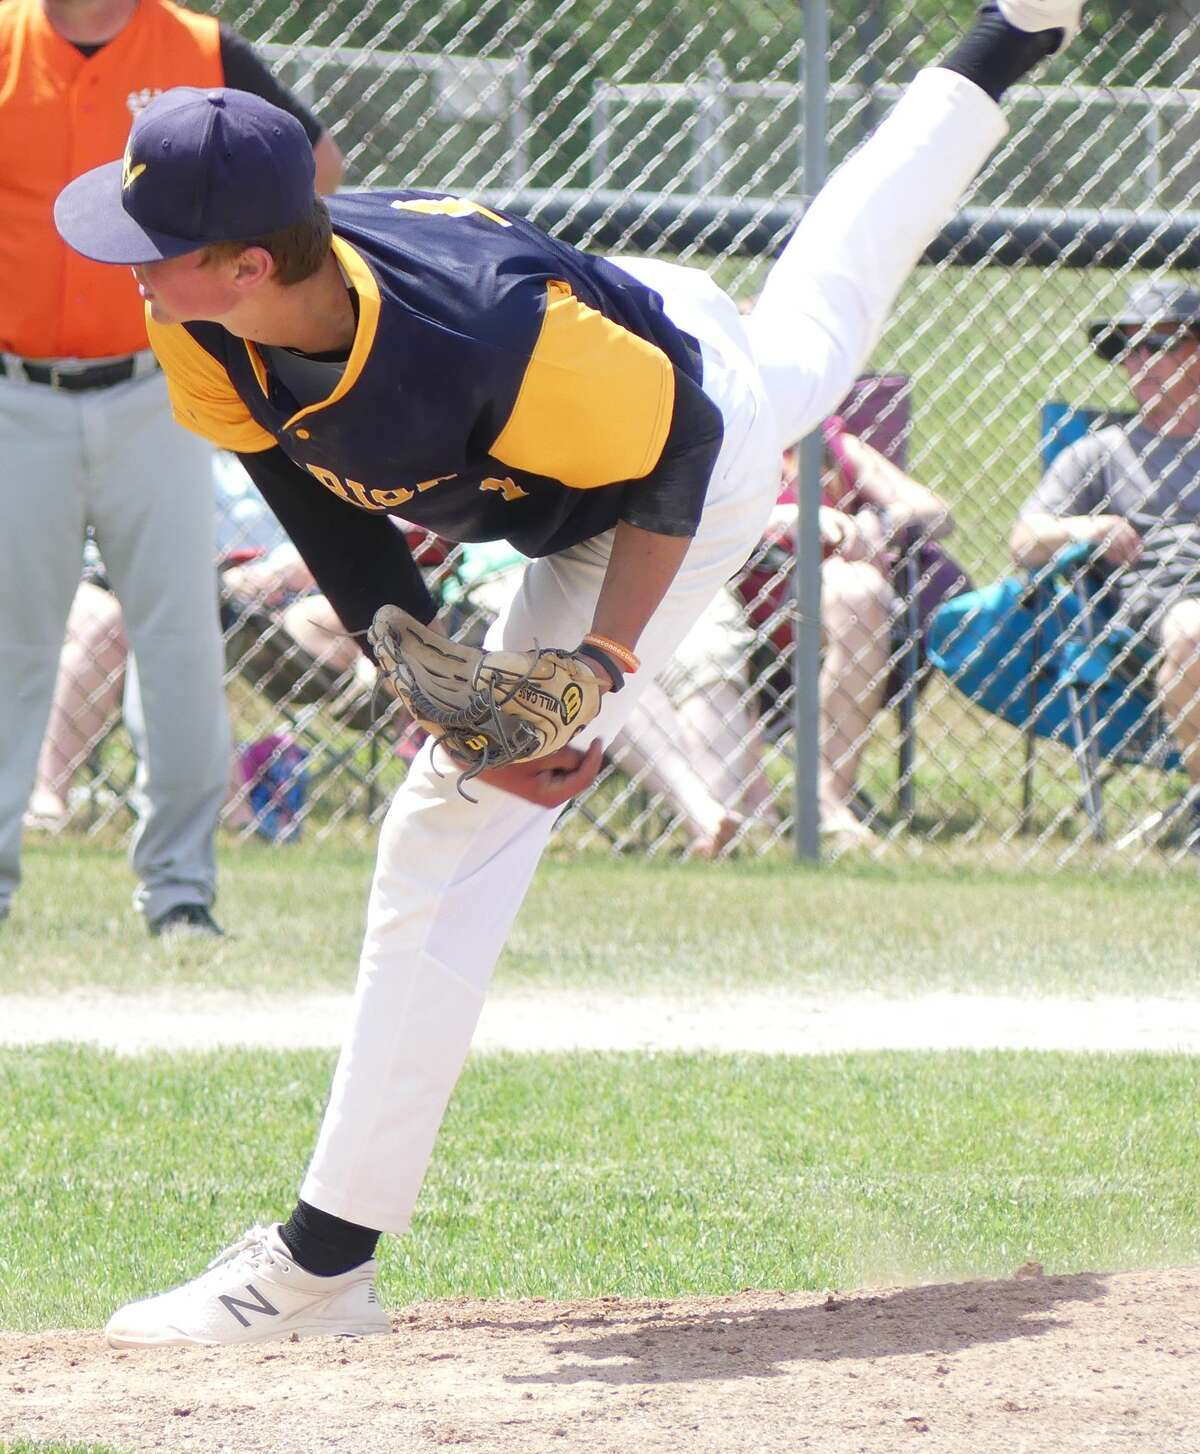 The Harbor Beach Pirates beat North Huron, 13-1 to capture the District 111 baseball championship on Saturday at Ubly High School. The Pirates will take on Marlette in the regional semifinals on Wednesday, June 9, at Kingston High School. First pitch is scheduled for 4 p.m.